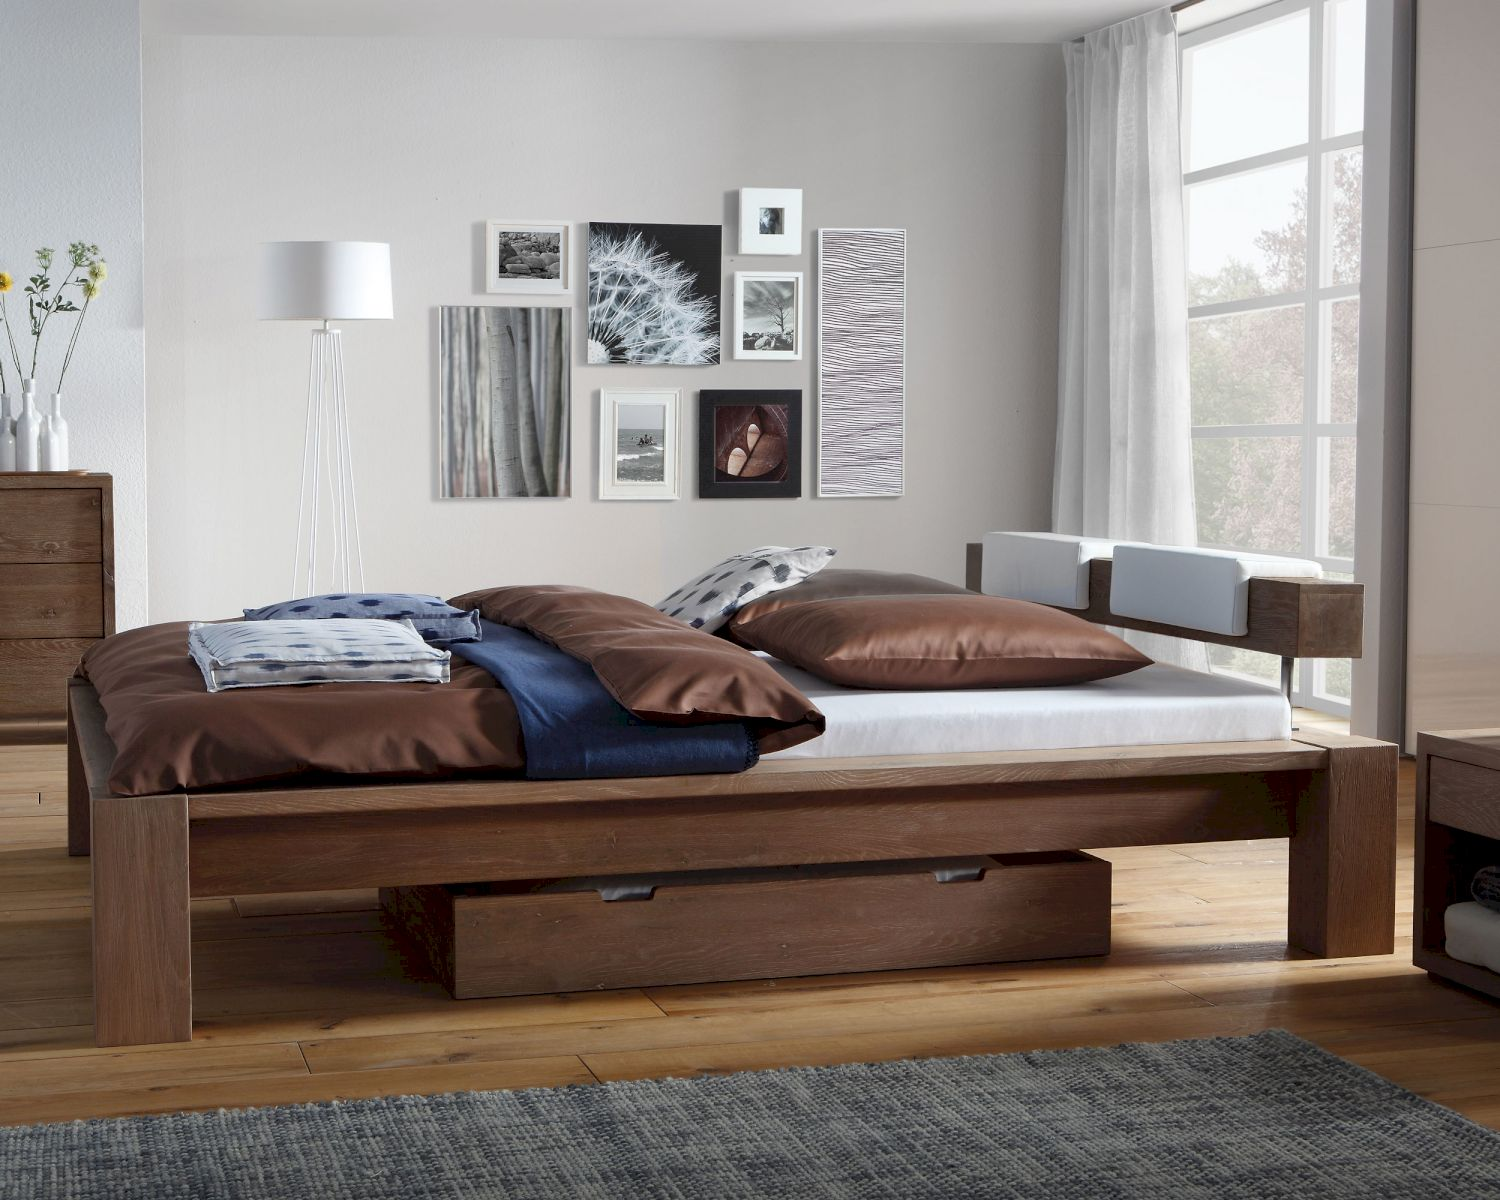 hasena oak line wild bett cortina cobobalco. Black Bedroom Furniture Sets. Home Design Ideas